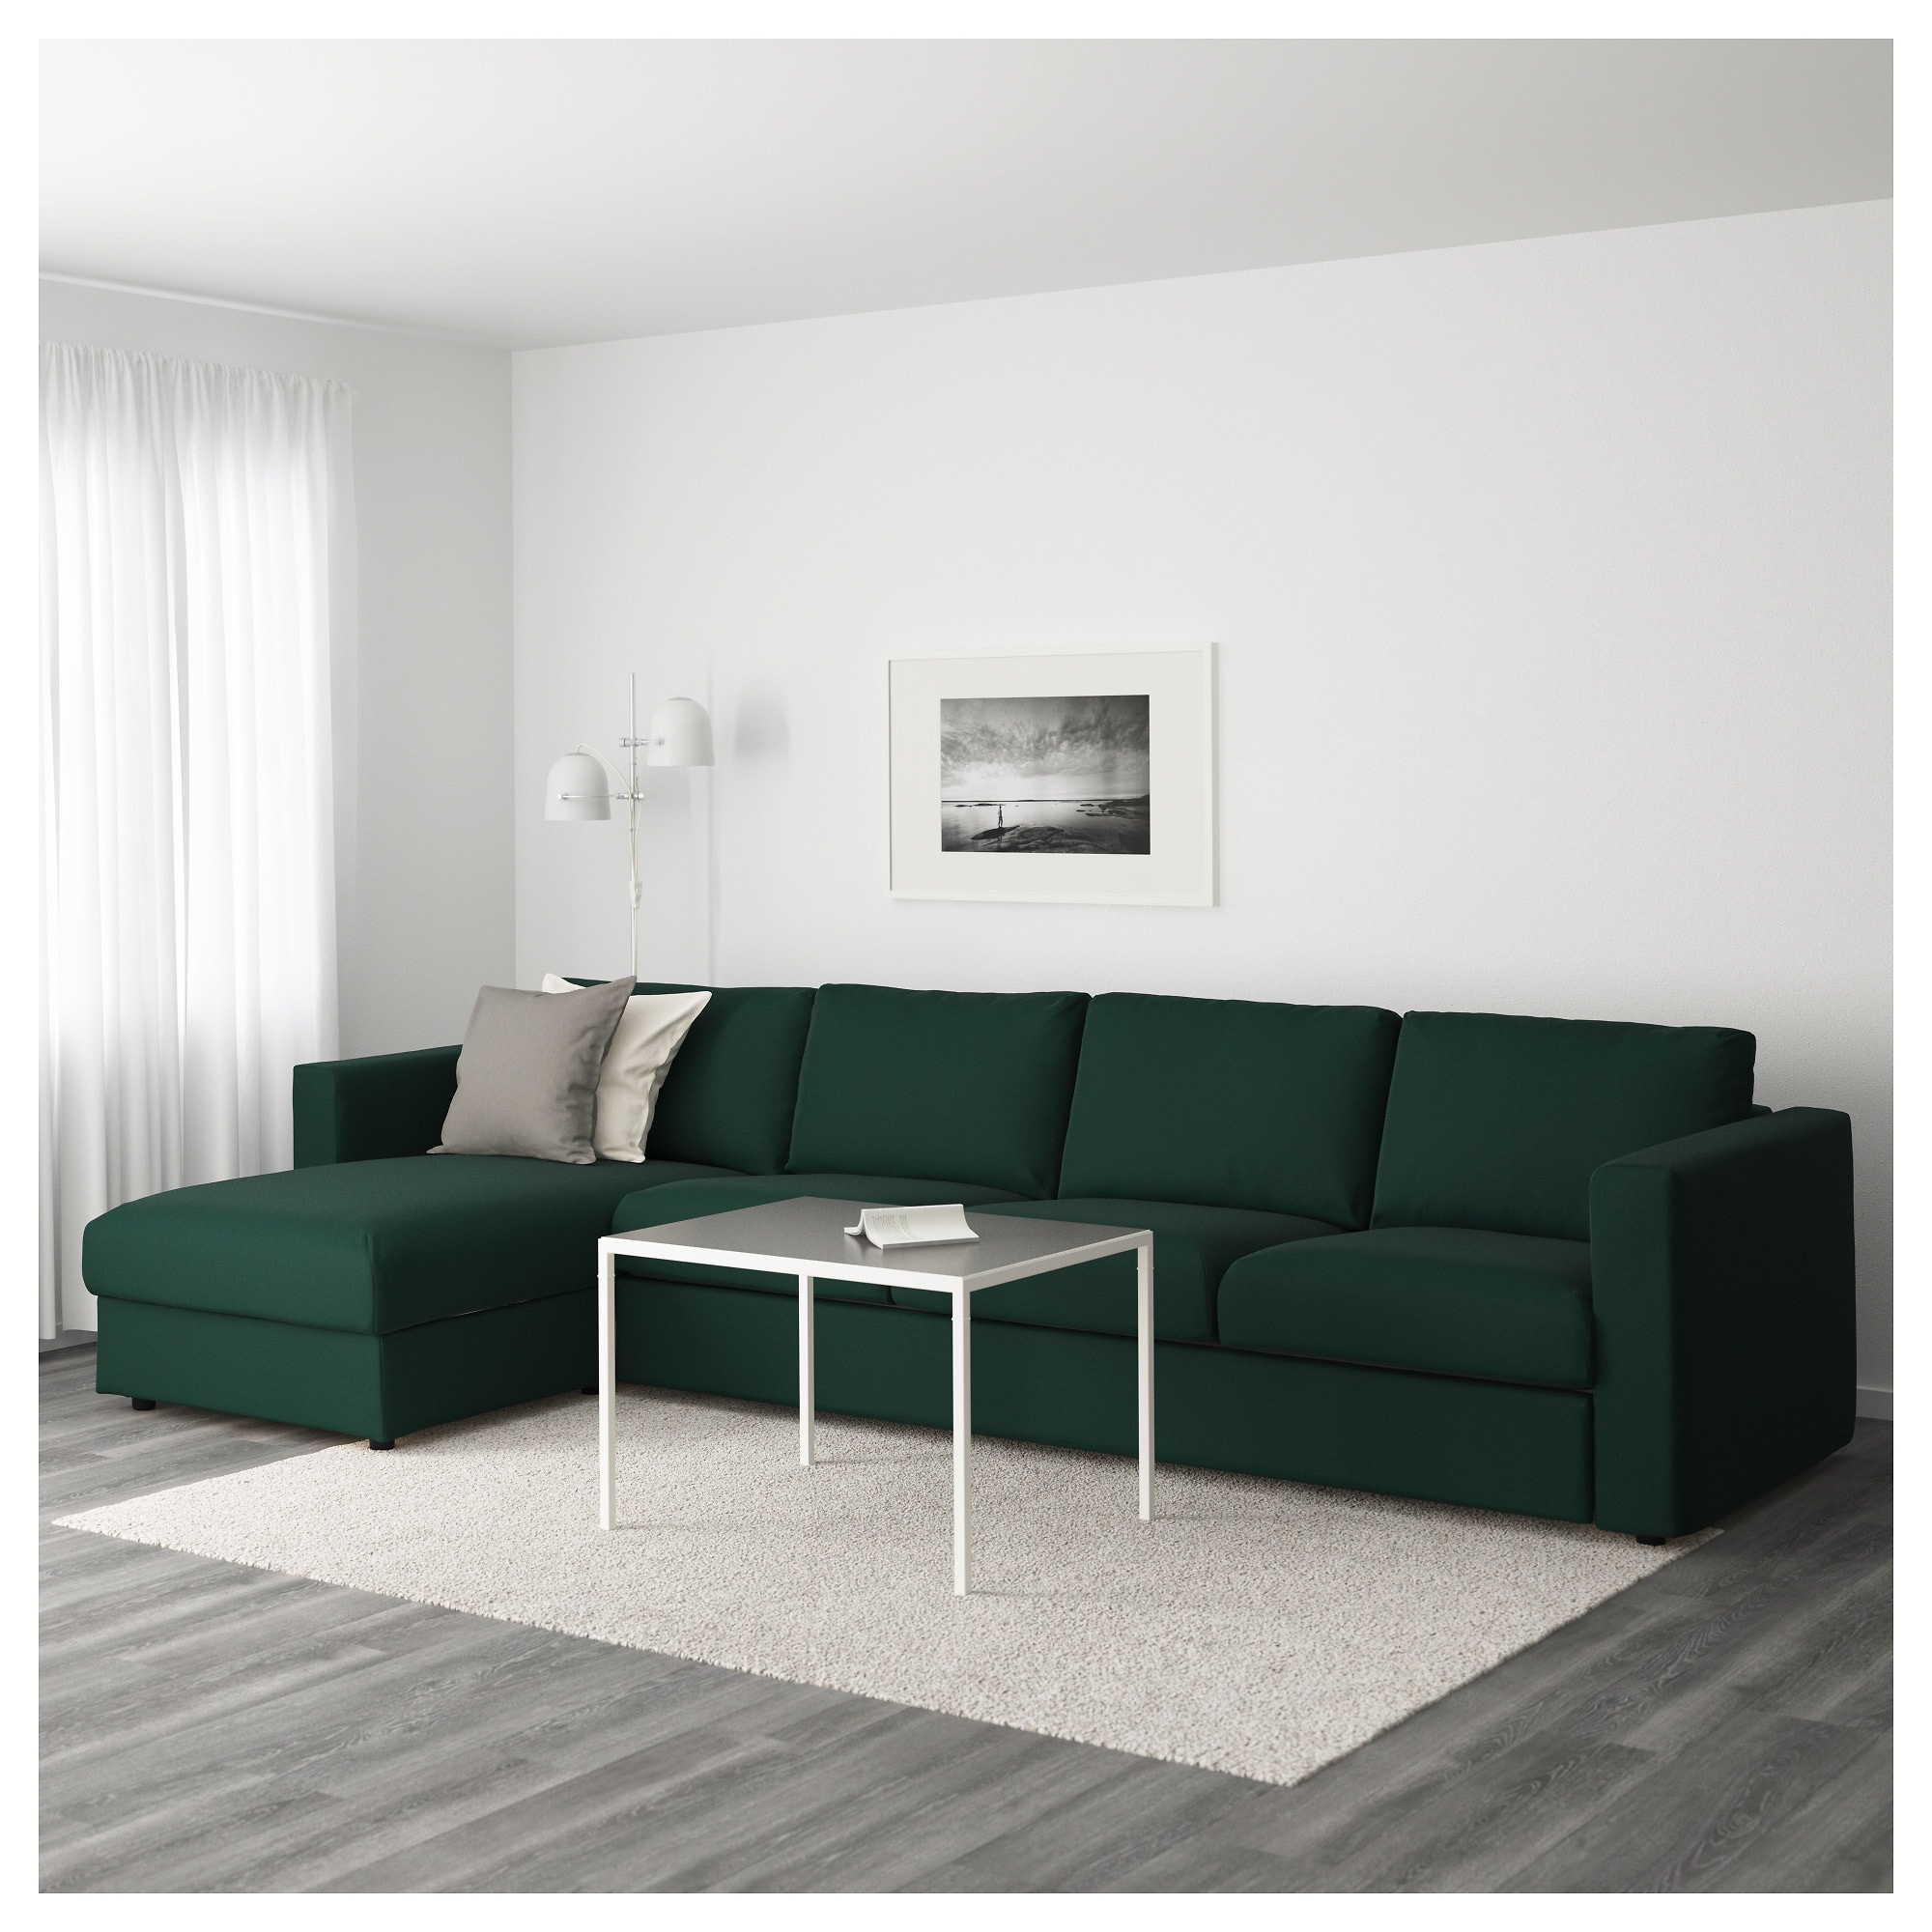 Sofas 5 Plazas Chaise Longue Perfecto Vimle 4 Seat sofa with Chaise Longue Gunnared Dark Green Of Sofas 5 Plazas Chaise Longue Arriba sofás 4 Plazas Con Chaise Longue